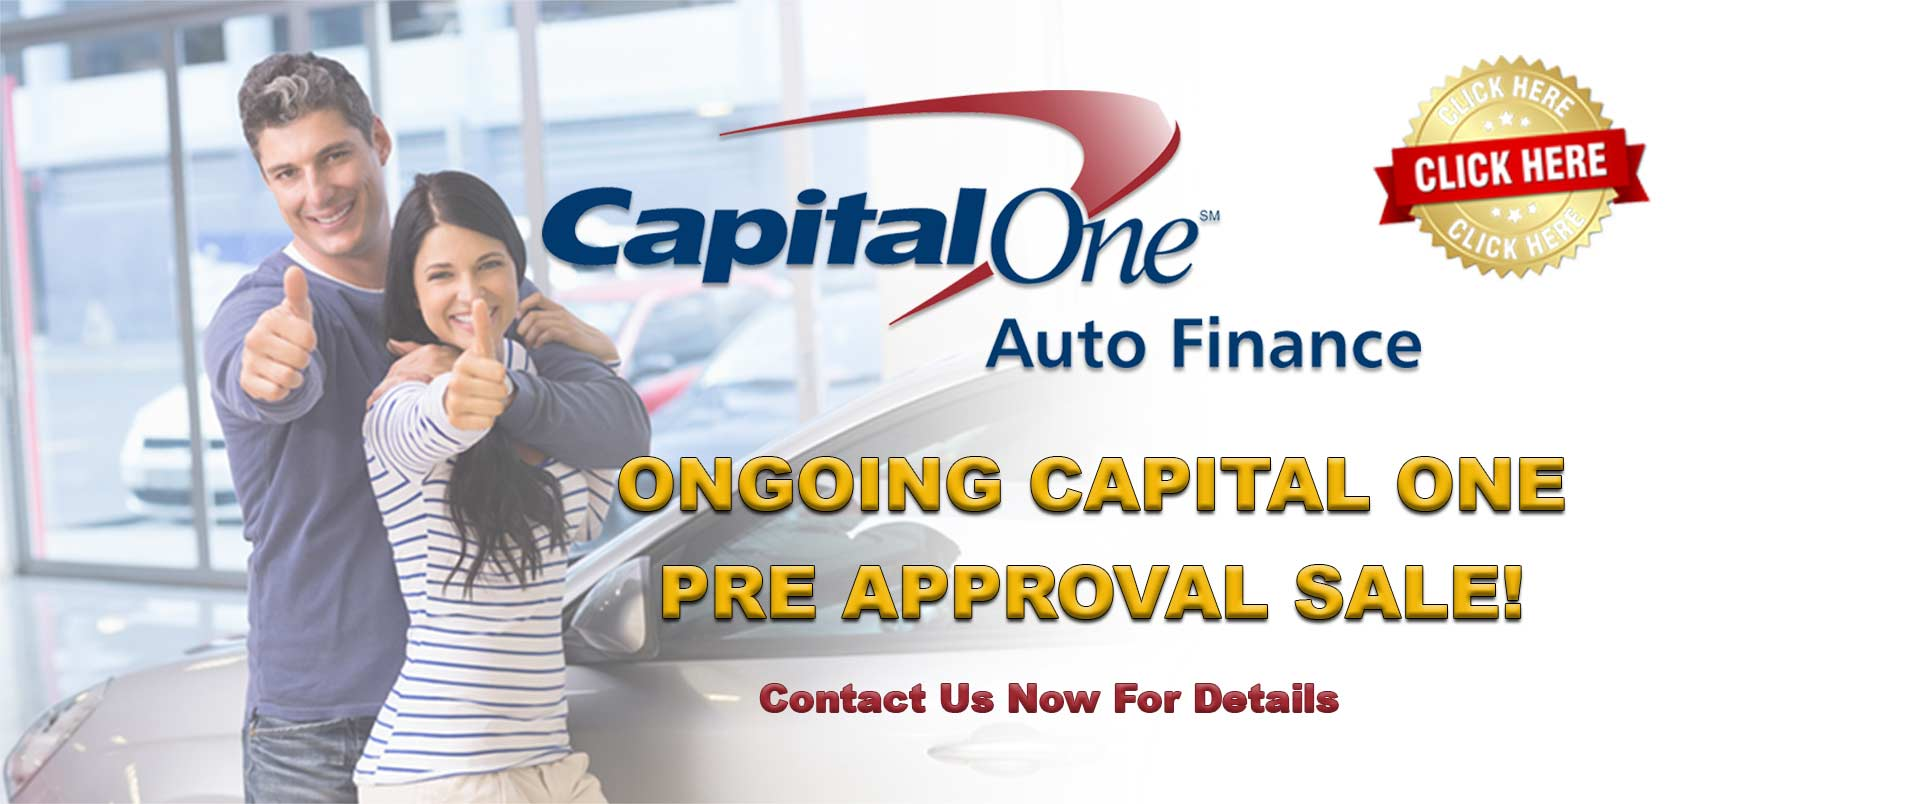 Ongoing-Capital-One-Pre-Approval-Sale